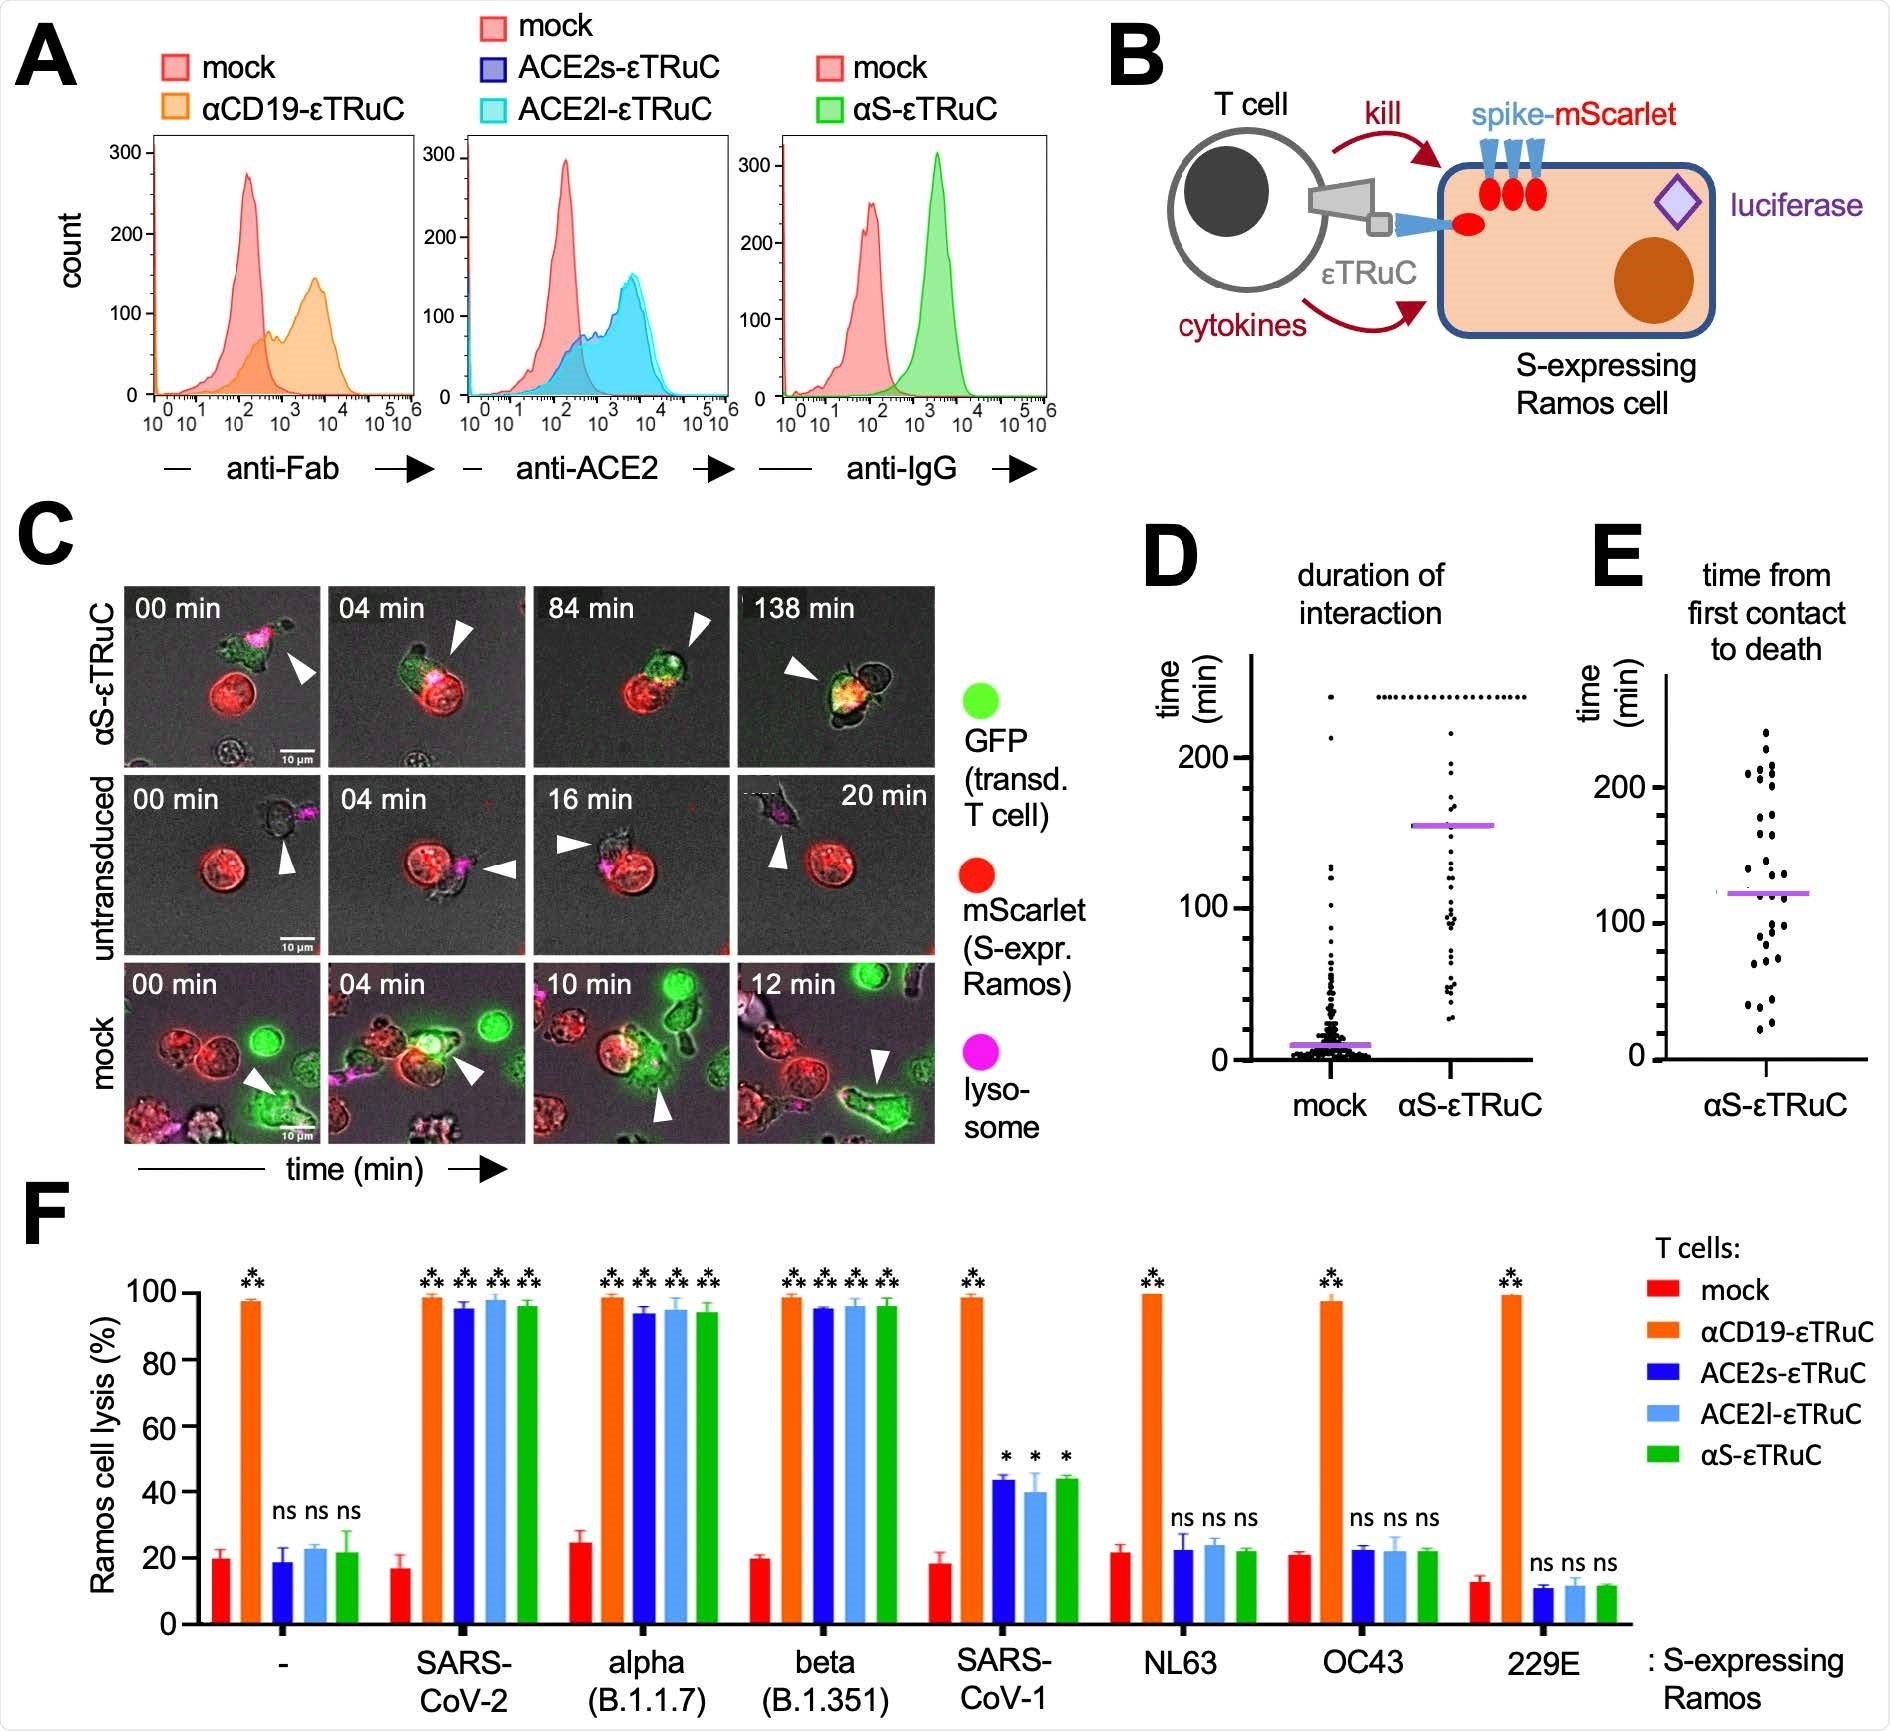 S-specific εTRuC T cells selectively eliminate S-expressing cells. A, Primary human T cells were transduced with the lentiviral vectors encoding for the εTRuCs or the mock vector and expanded with IL-2. Surface expression of the εTRuCs was determined by anti-Fab, anti-ACE2 and anti-IgG staining as indicated. B, S-and luciferaseexpressing Ramos cells are killed by the new εTRuC T cells. C, An αS-εTRuC T cell (green) with the lysosomes stained in pink and an S-mScarlet-expressing Ramos cell (red) were imaged and selected frames of the given times are shown (upper panel). Non-transduced (middle panel) and mock-transduced (green, lower panel) T cells were imaged together with the S-mScarlet-expressing Ramos cells (red). D, Quantification of the duration of interaction between S-mScarlet-expressing Ramos cells and αS-εTRuC or mock T cells from the 4 h videos. E, Quantification of the time it takes for an αS-εTRuC T cell to kill an S-mScarletexpressing Ramos cell (the purple lines in D and E depict the median). F, Ramos cells expressing luciferase, BFP and the different S-proteins were co-cultured with the εTRuC T cells for 24 h at in a 1:1 ratio. Target cell lysis was measured by a loss of luciferase activity in triplicates (the experiment was repeated more than 3 times, n>3).